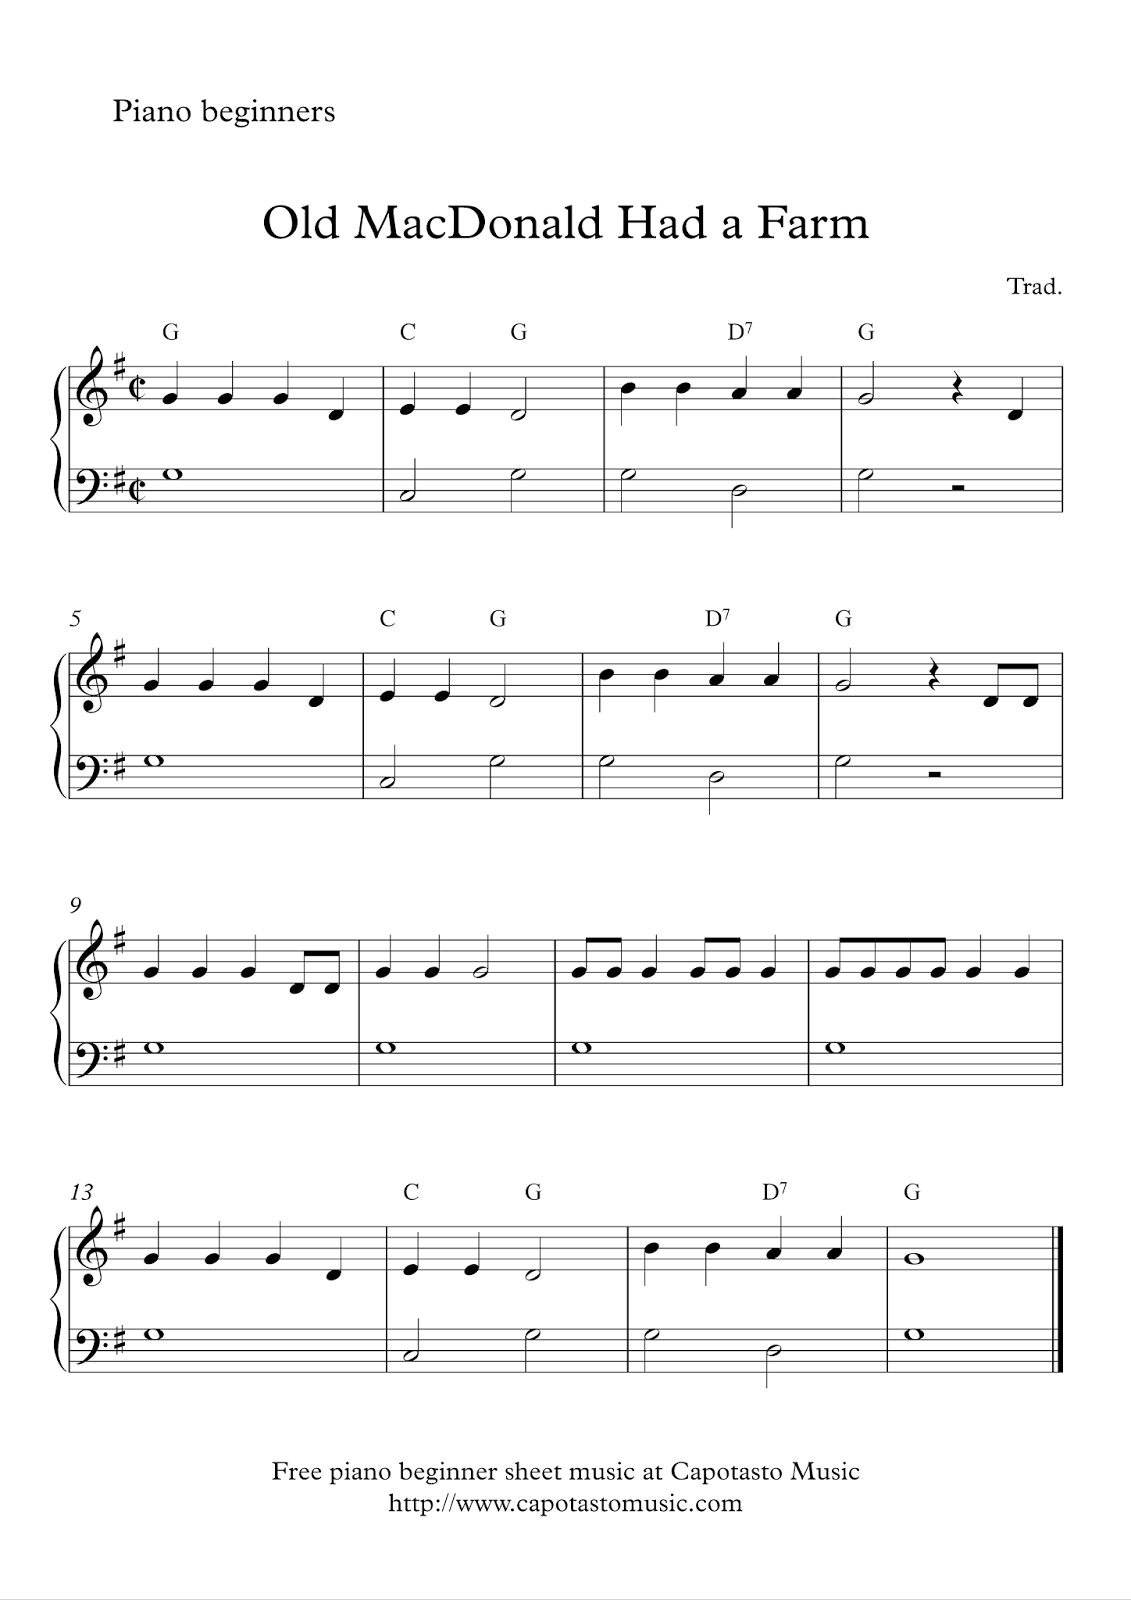 This Is An Easy Piano Solo Arrangement For Beginners Of